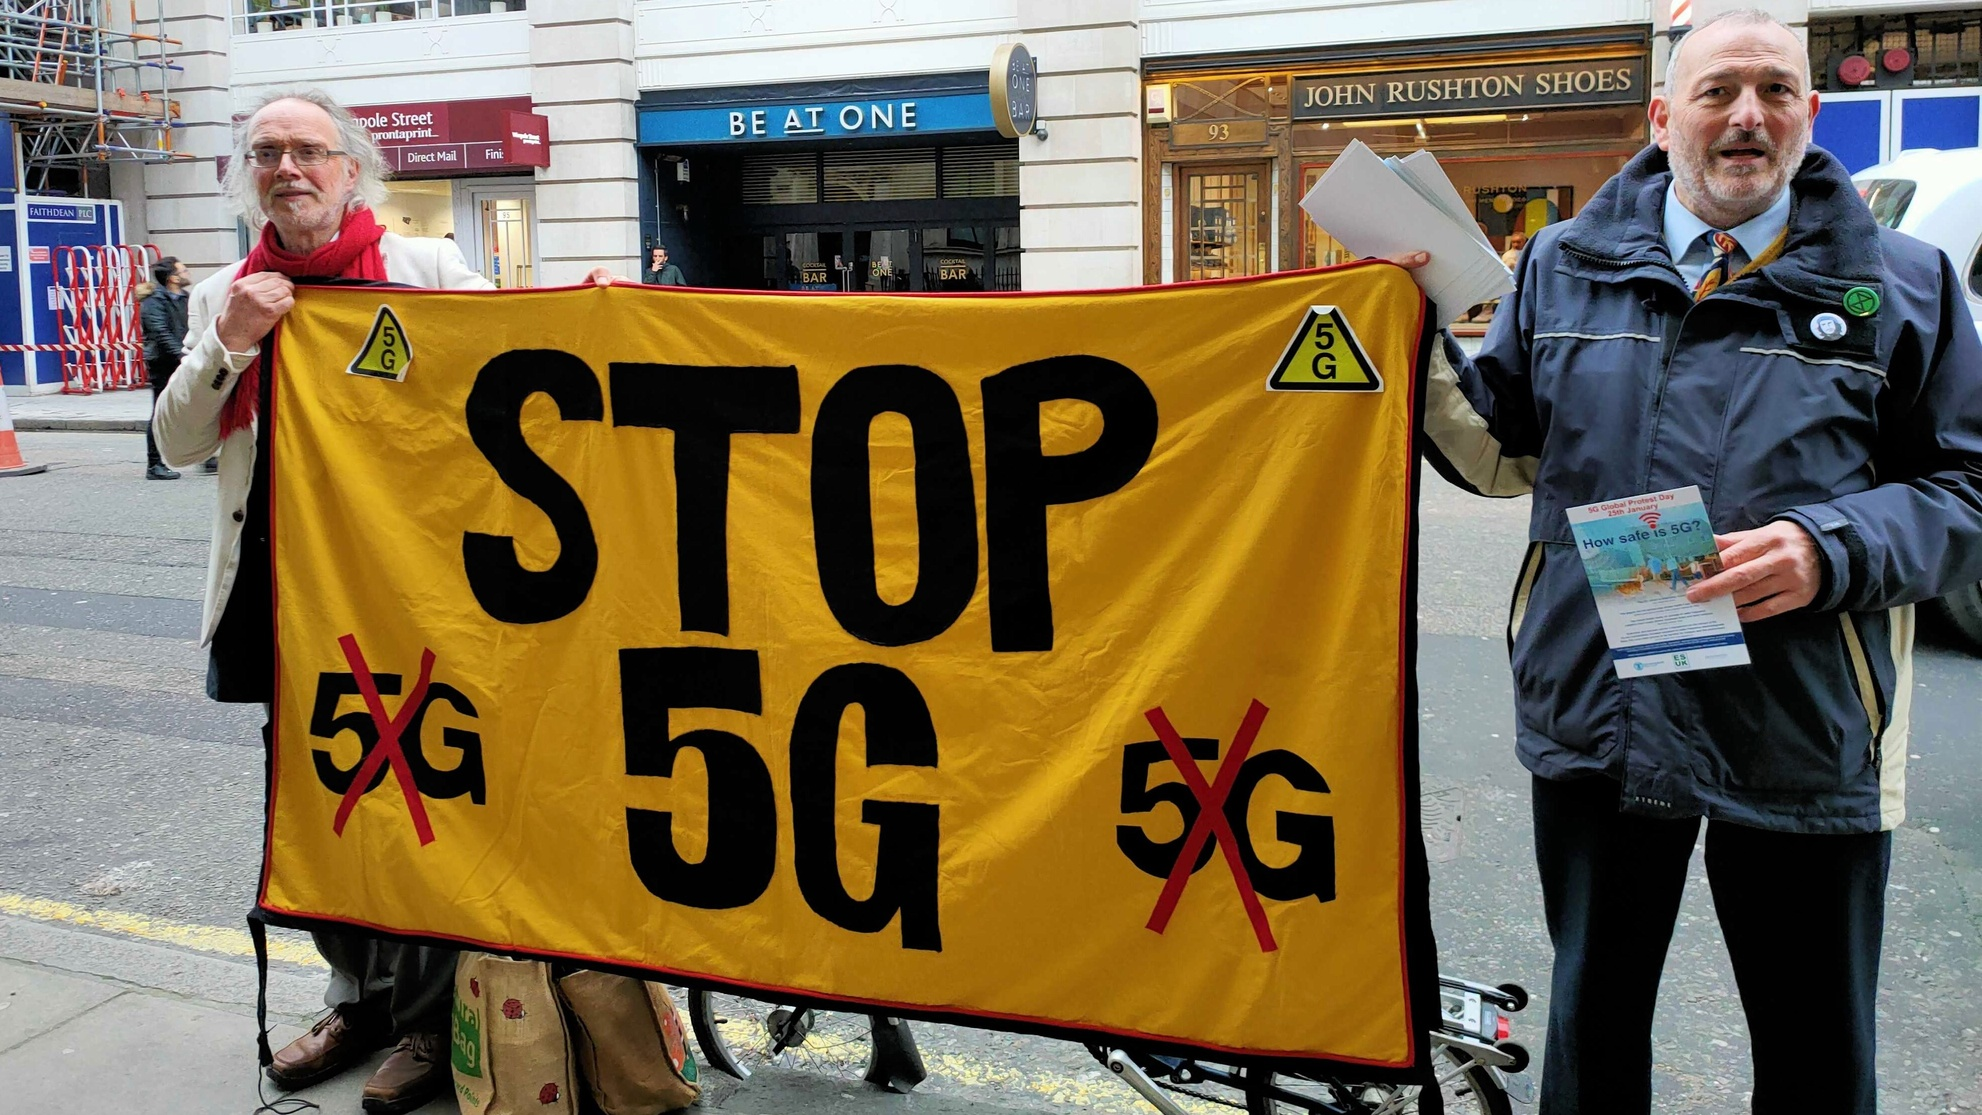 5g_protest